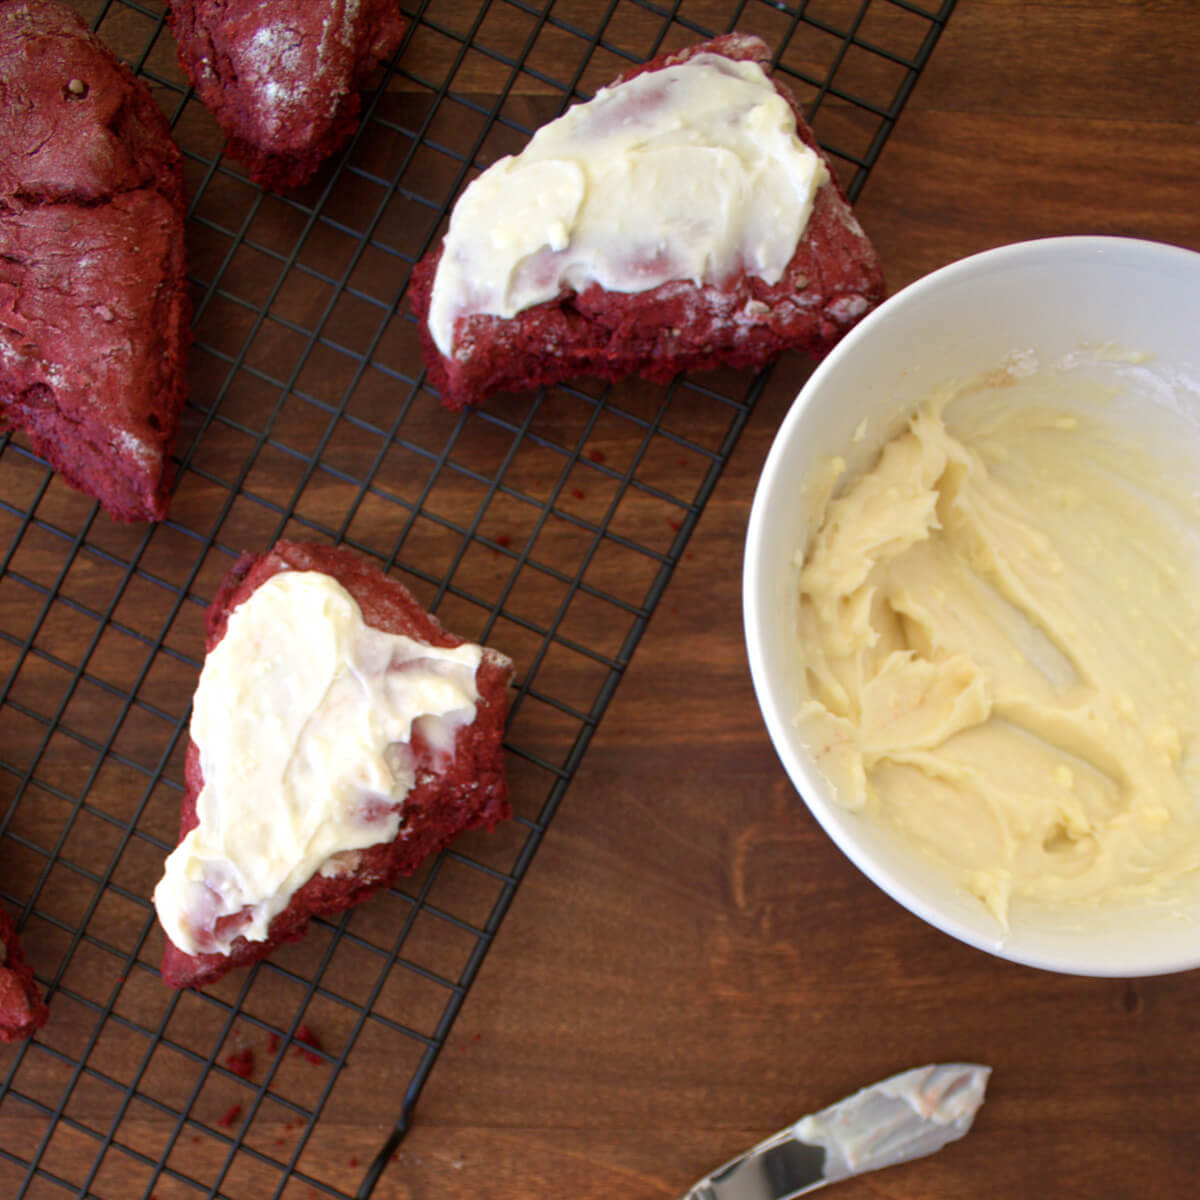 These decadent red velvet scones are the perfect thing to remind you to slow down and take a break.